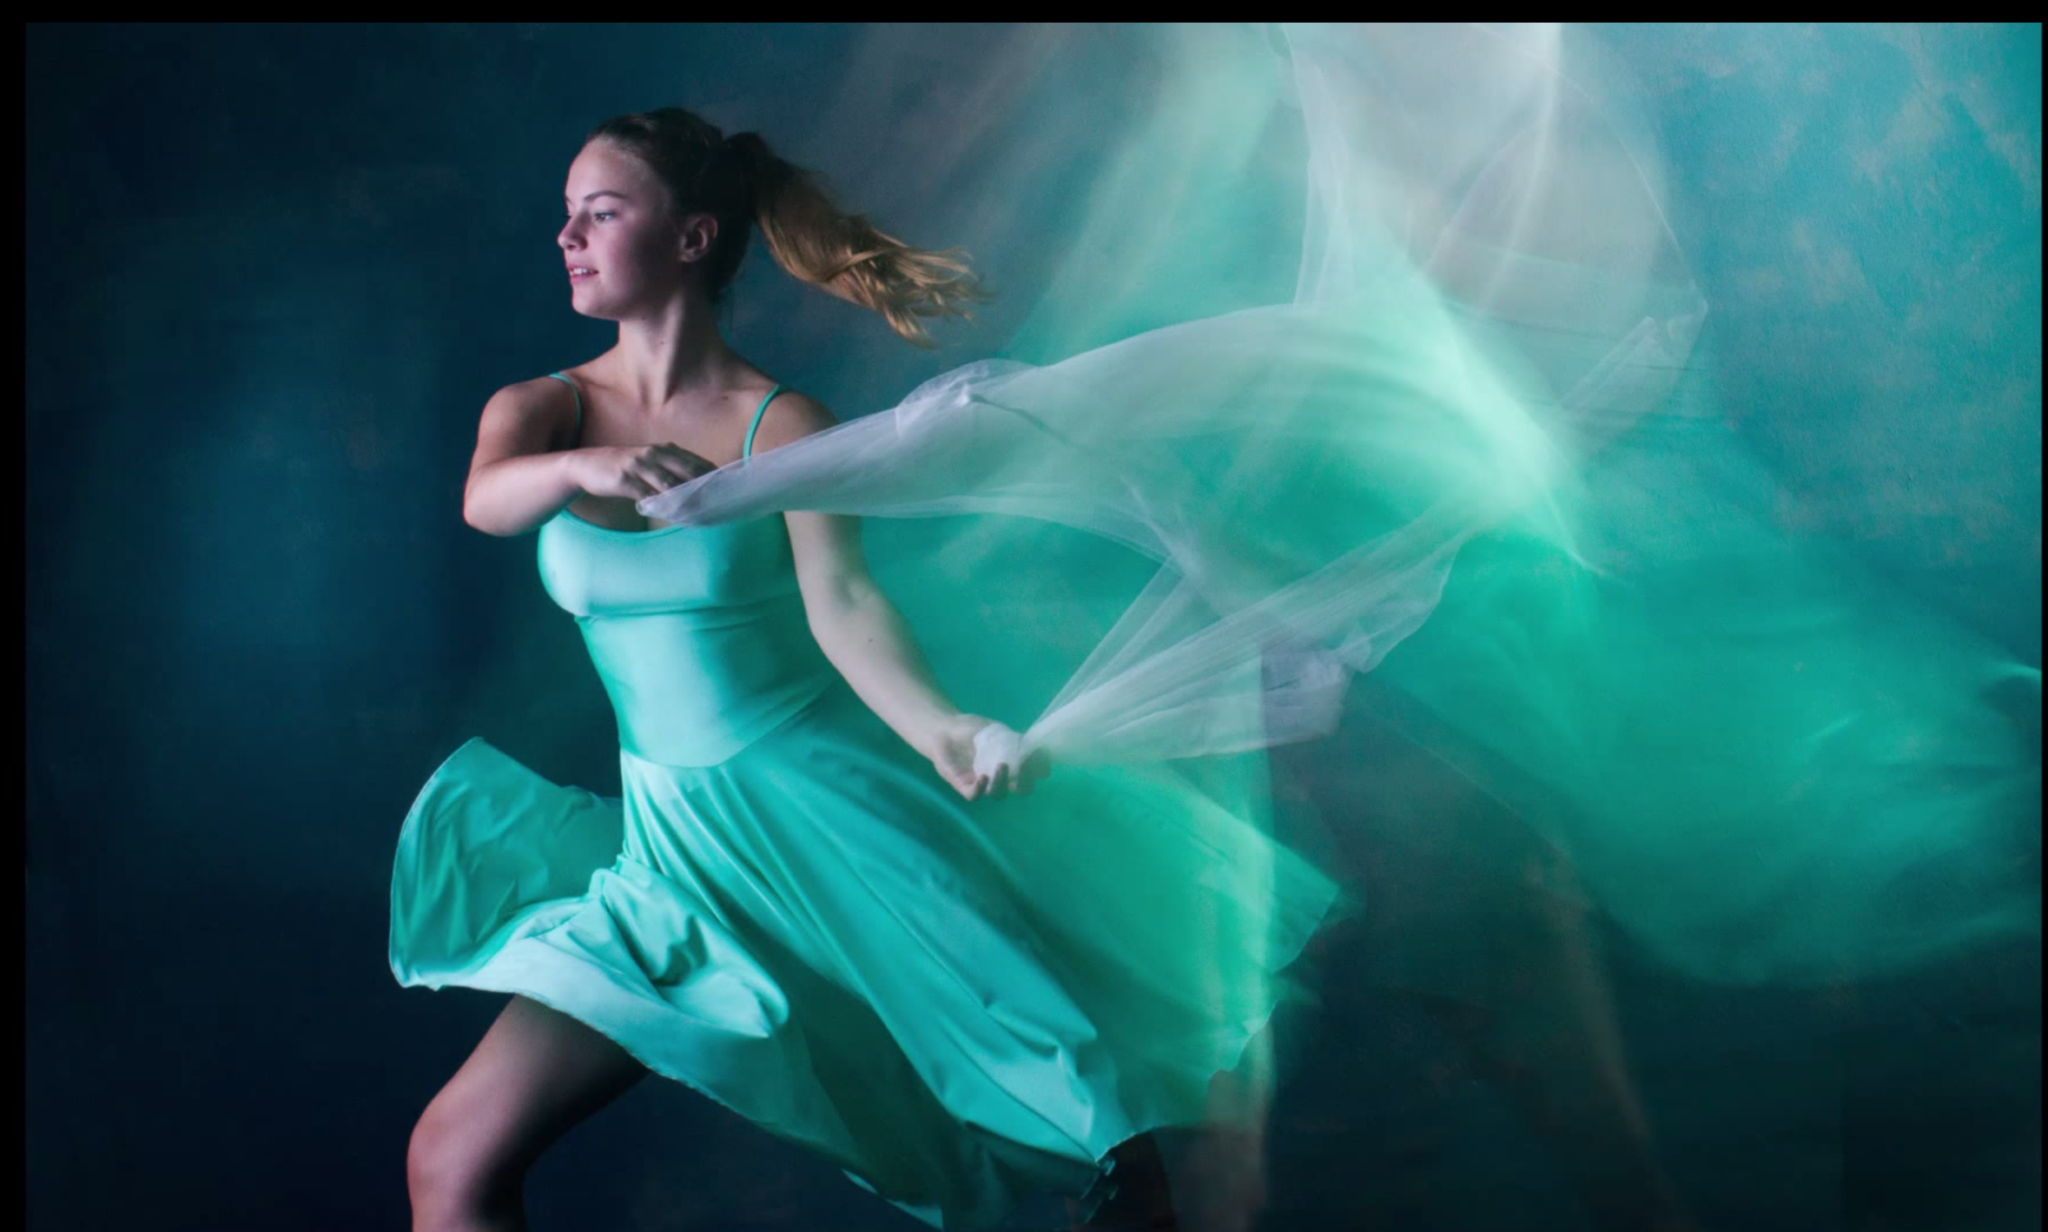 Photographing Dancers with Second Curtain Flash